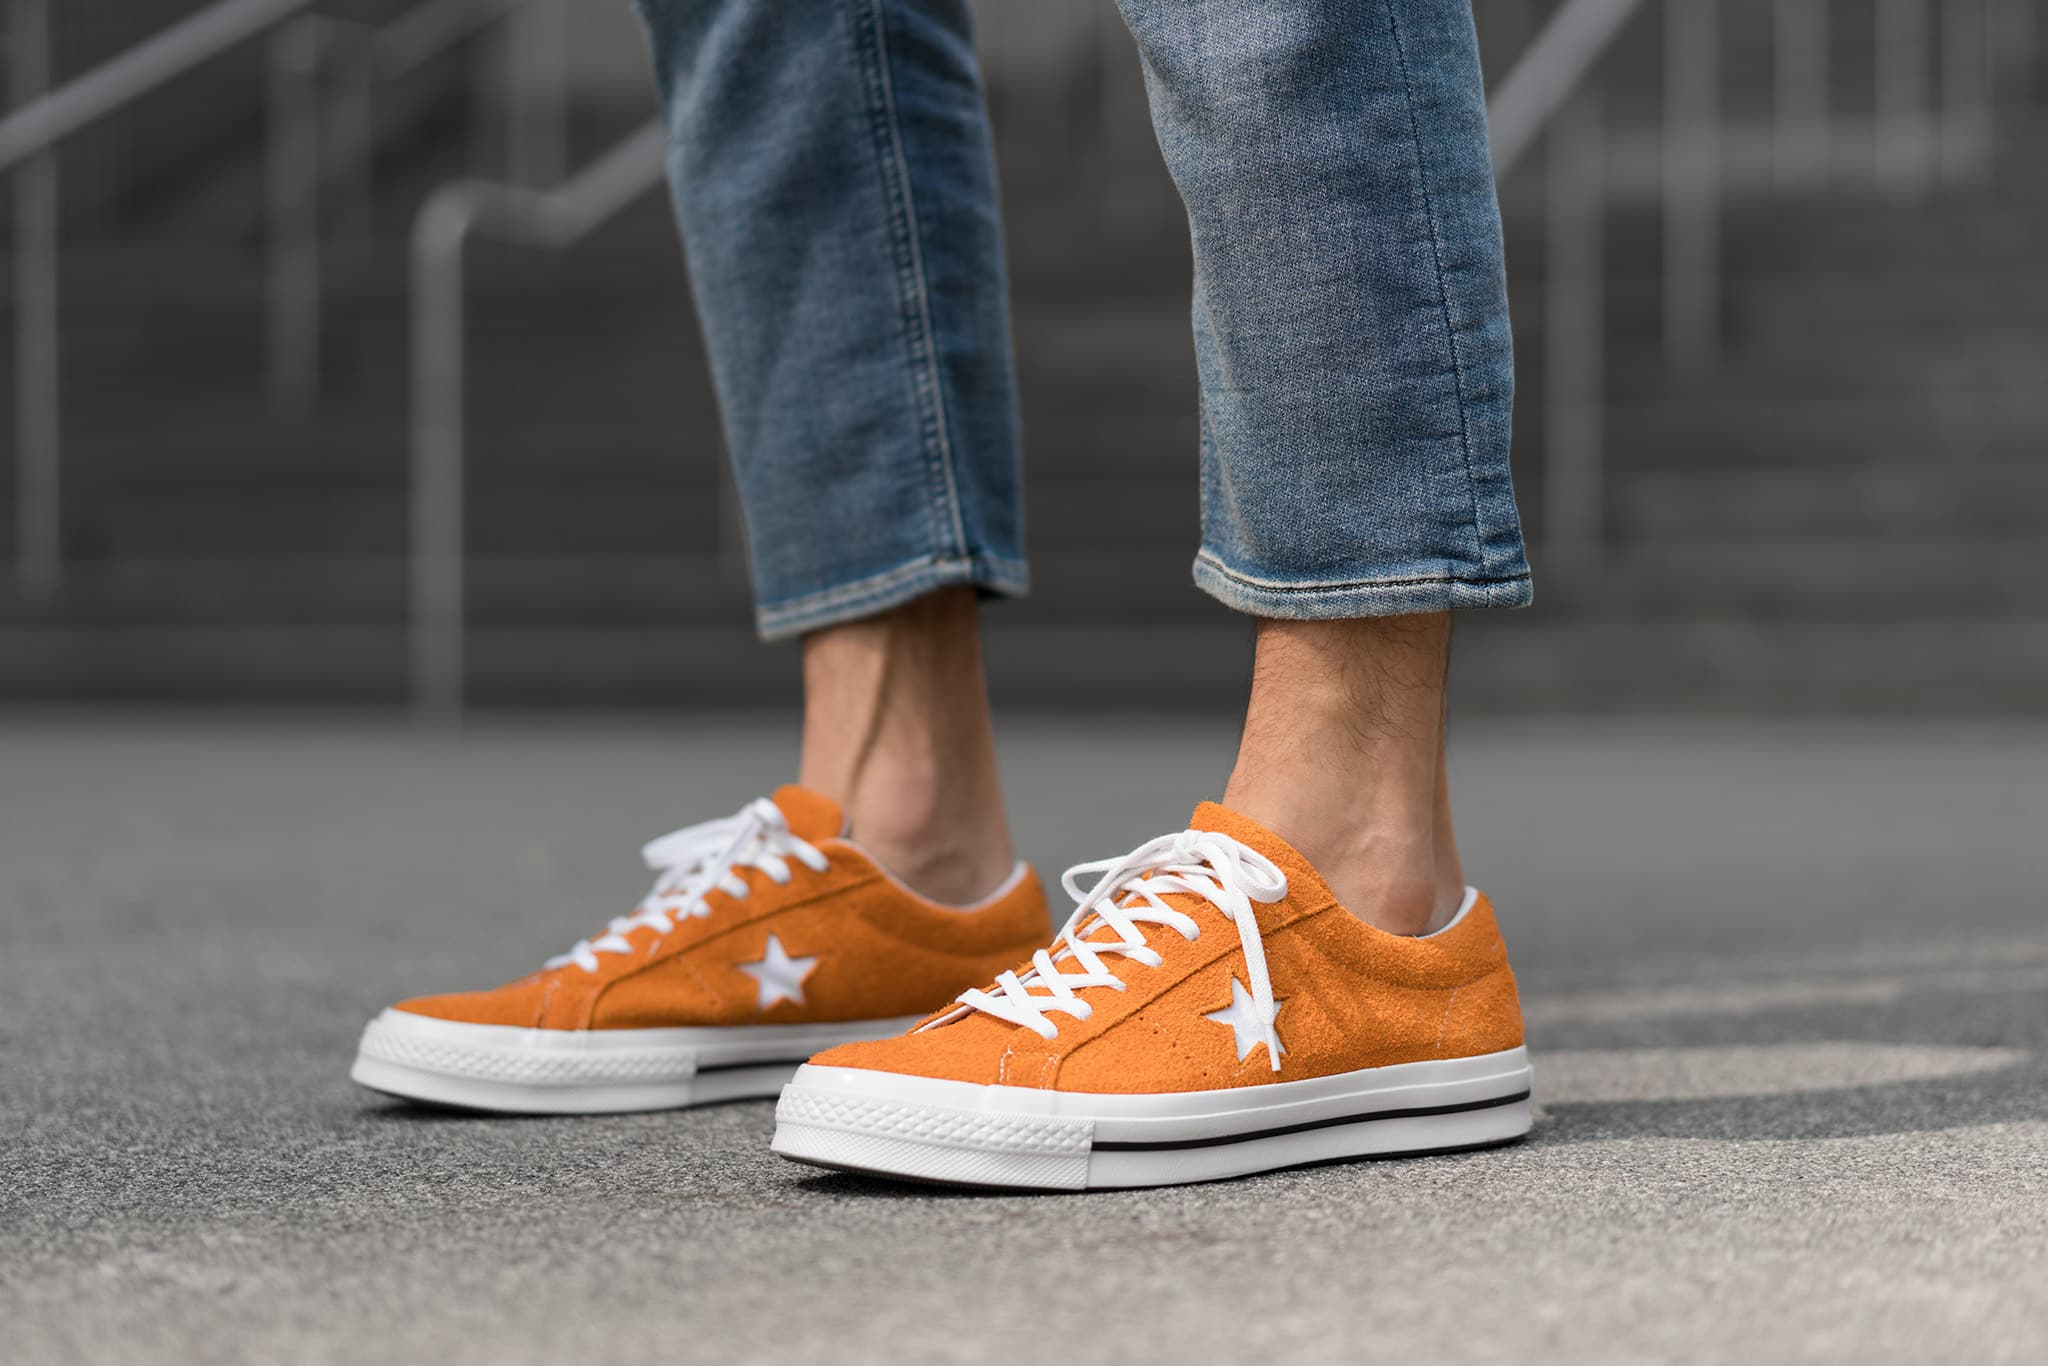 HAVEN Lookbook, Converse One Star Ox Mandarin